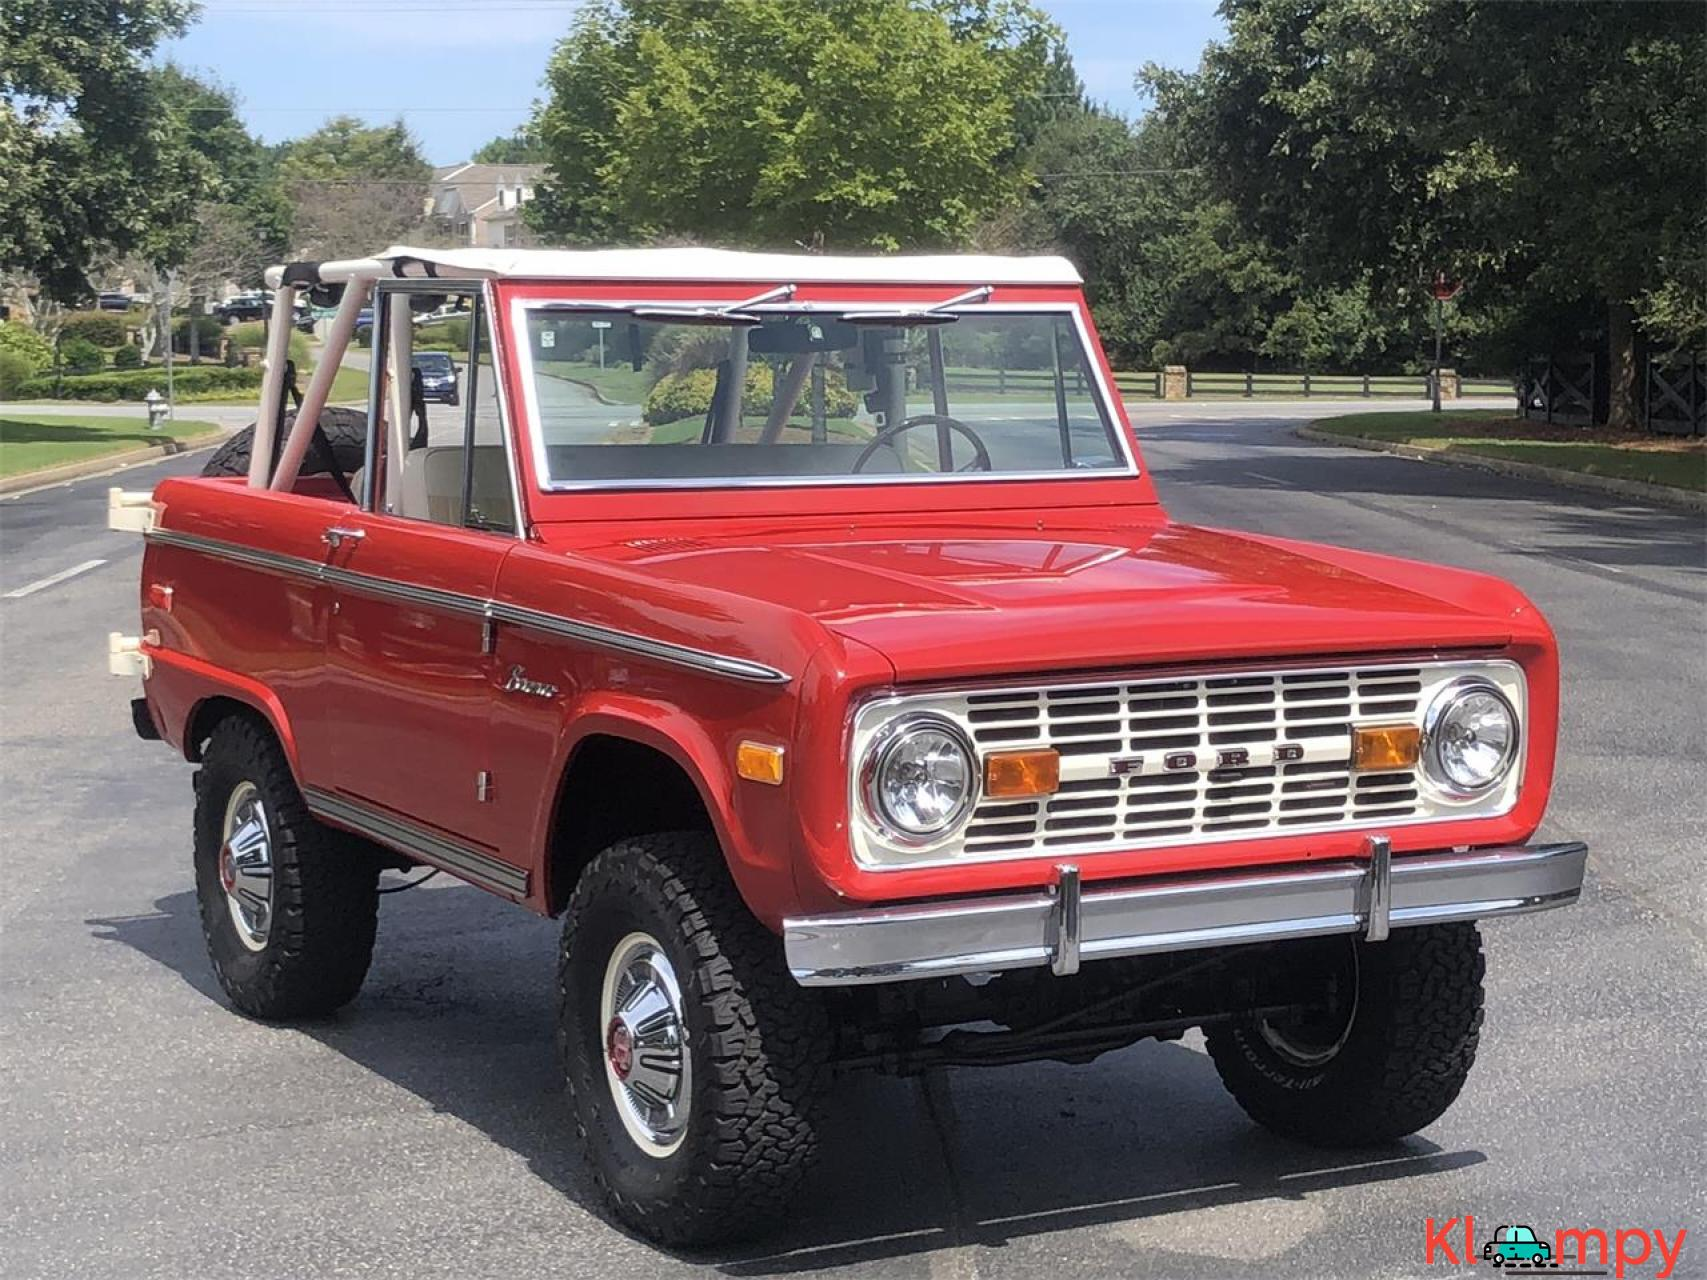 1974 Ford Bronco STRONG 302 - 4/20